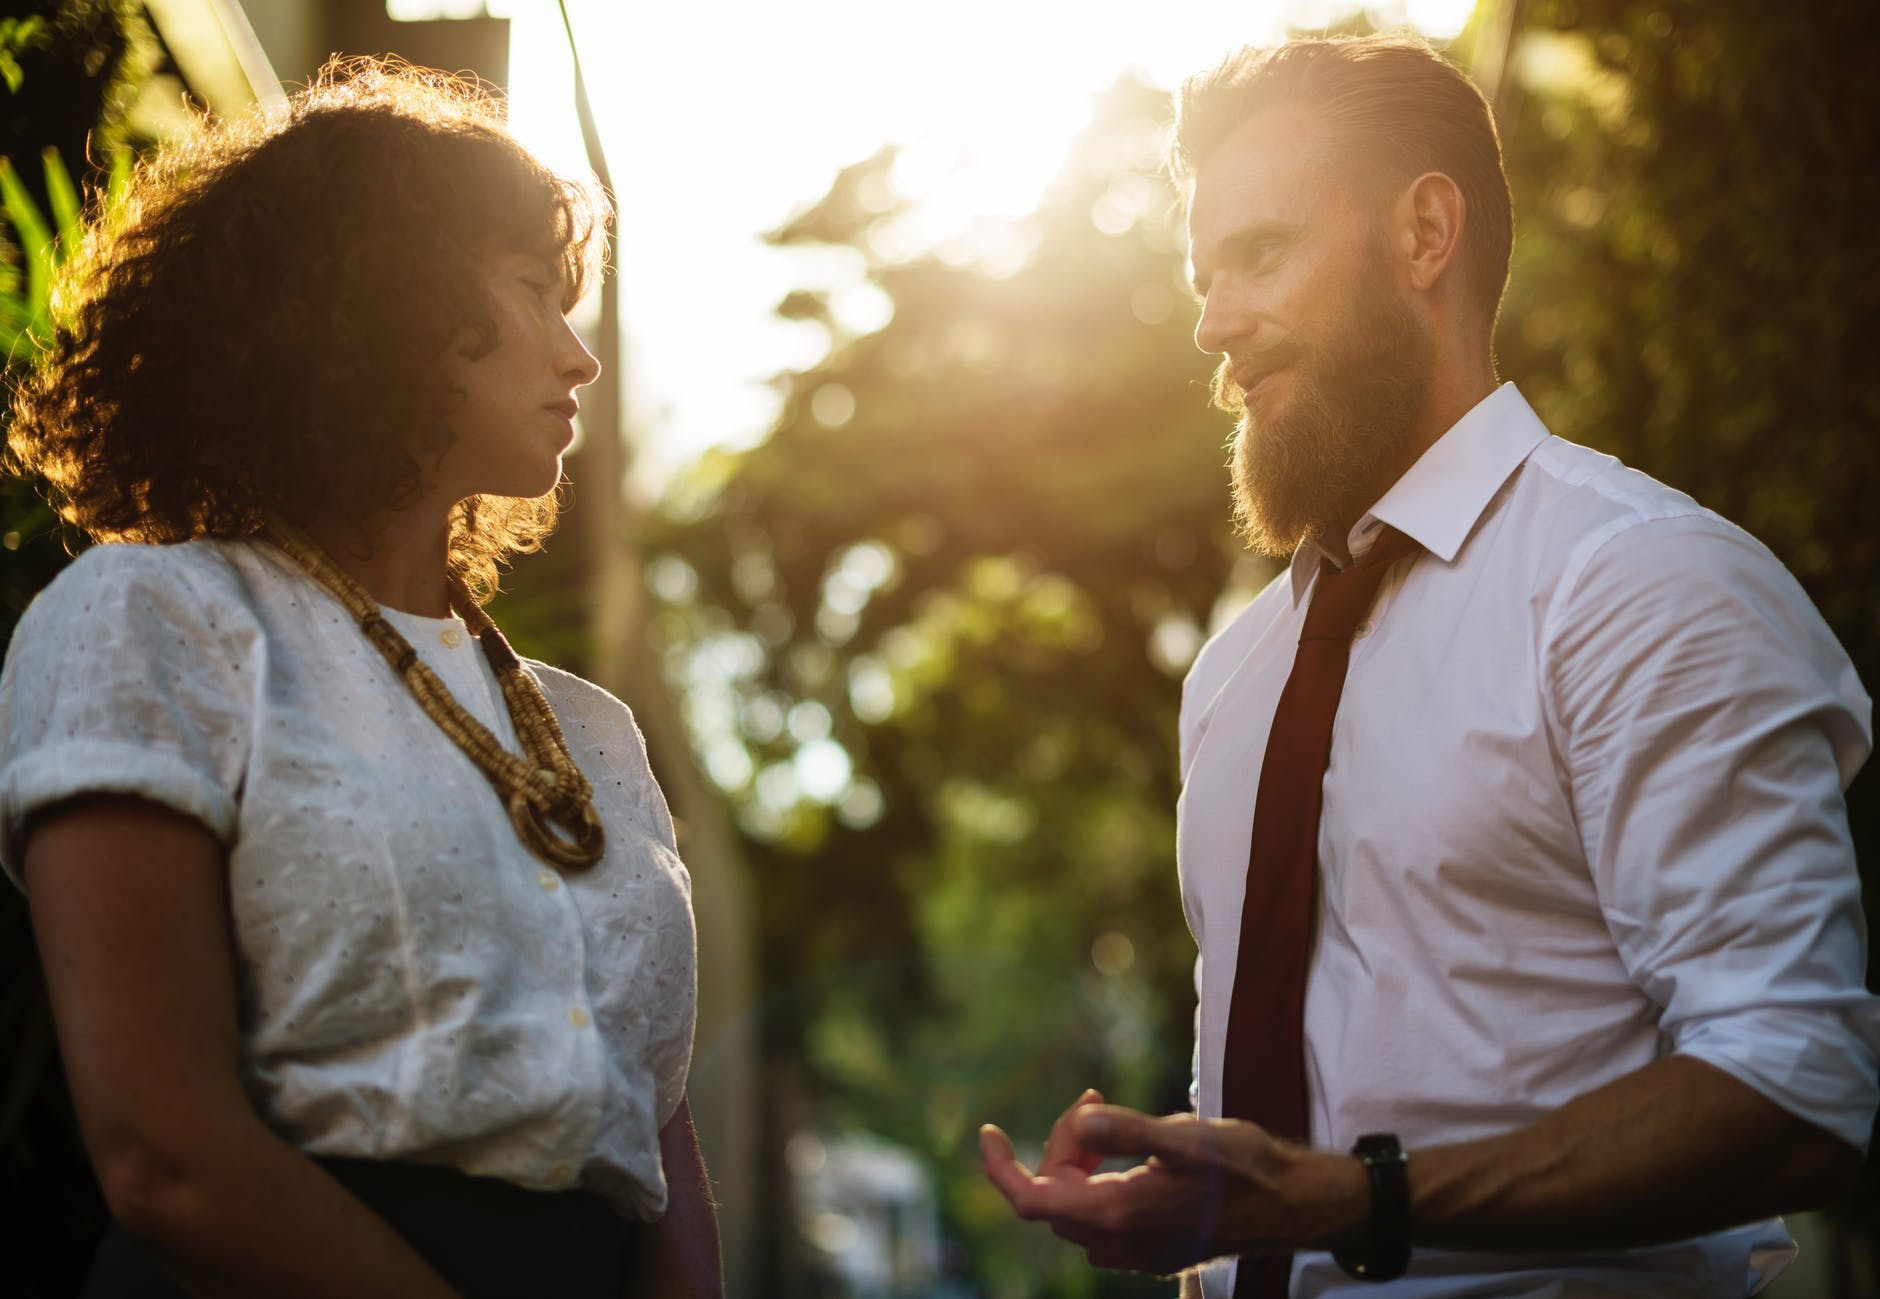 Understand The Importance Of Communication In Relationships